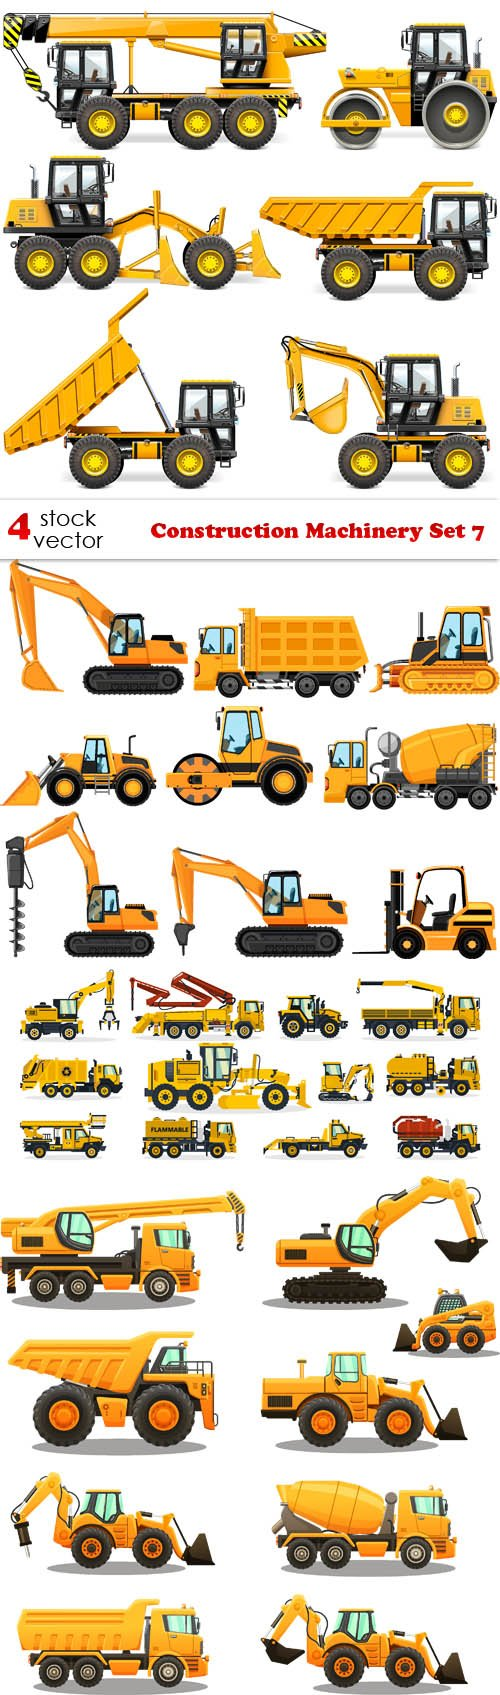 Vectors - Construction Machinery Set 7